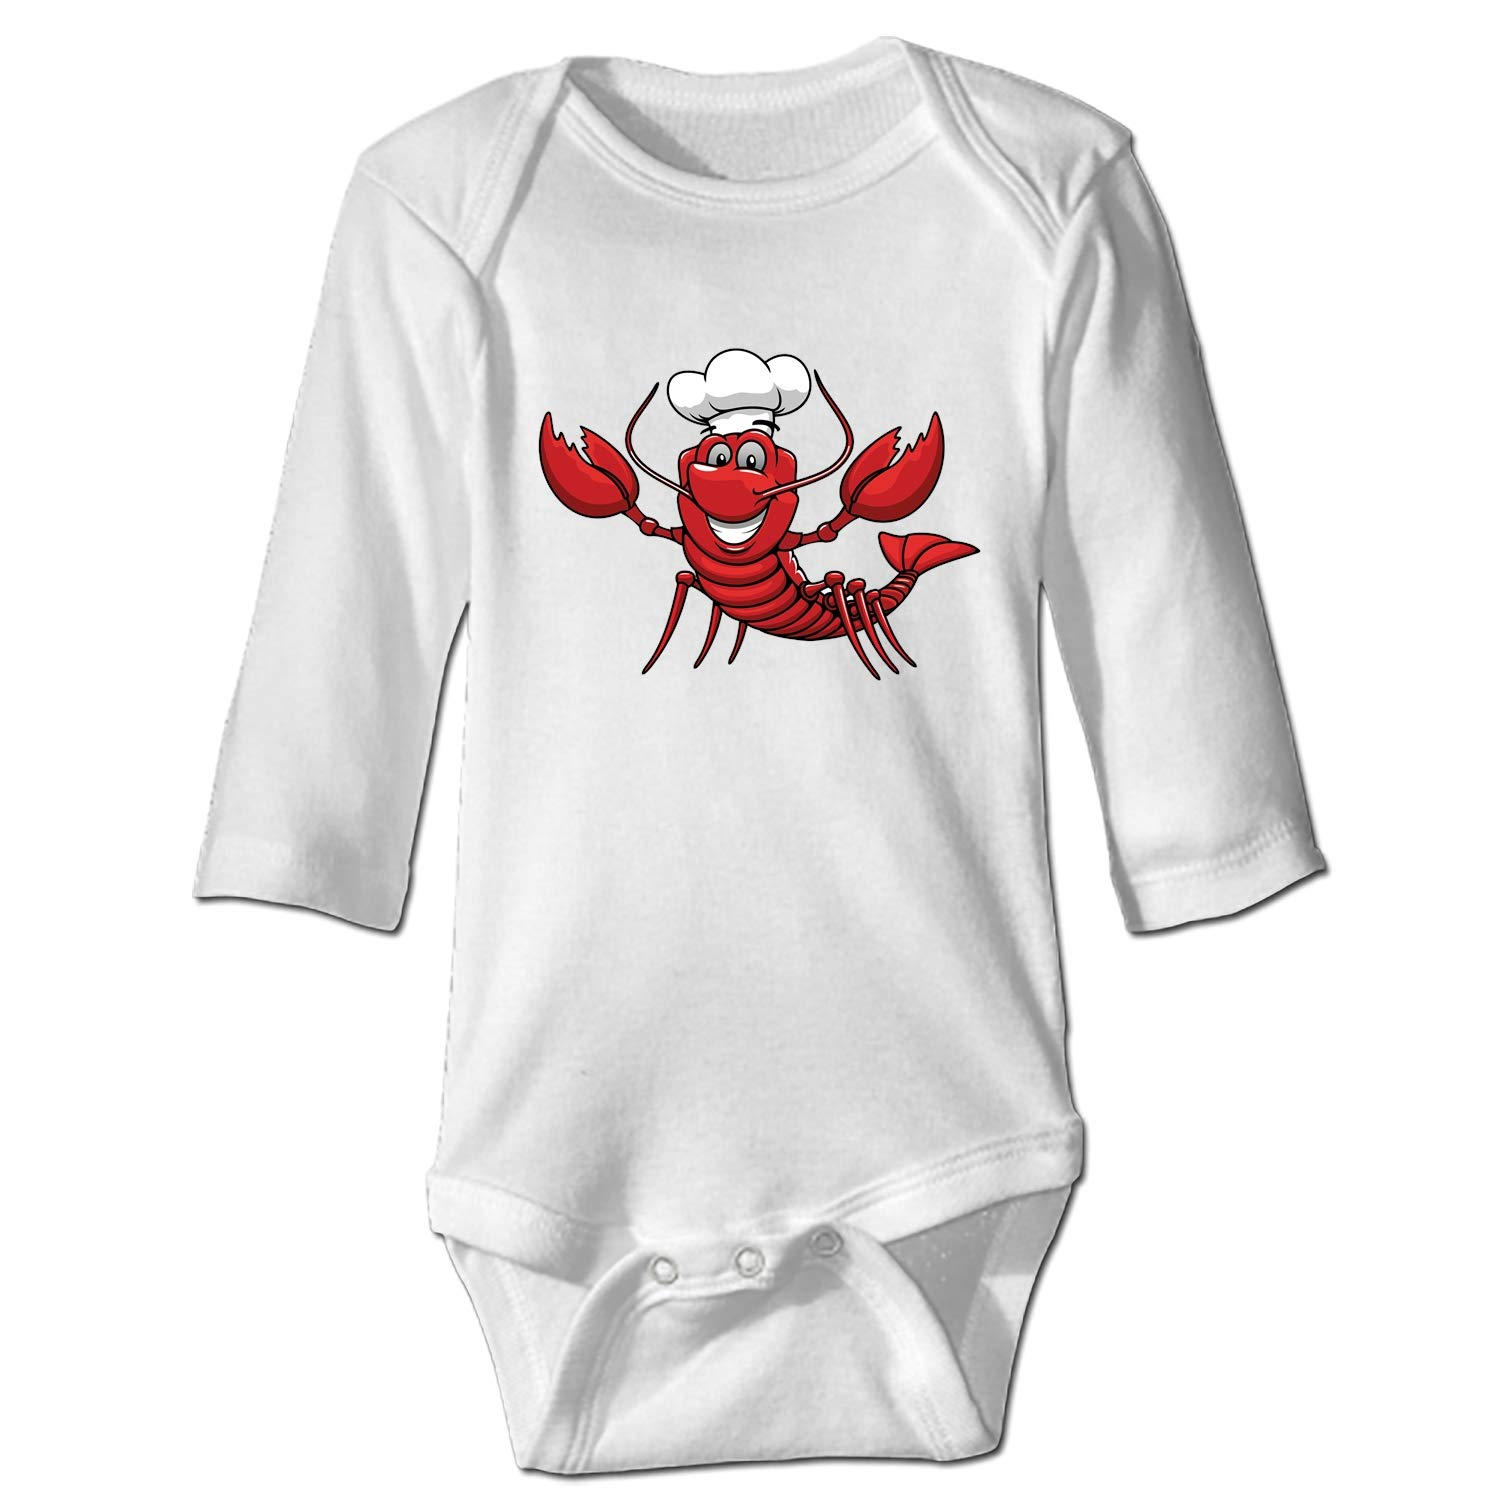 Imiss Baby Cotton Bodysuits Crawfish Chef Long-Sleeve Onesies